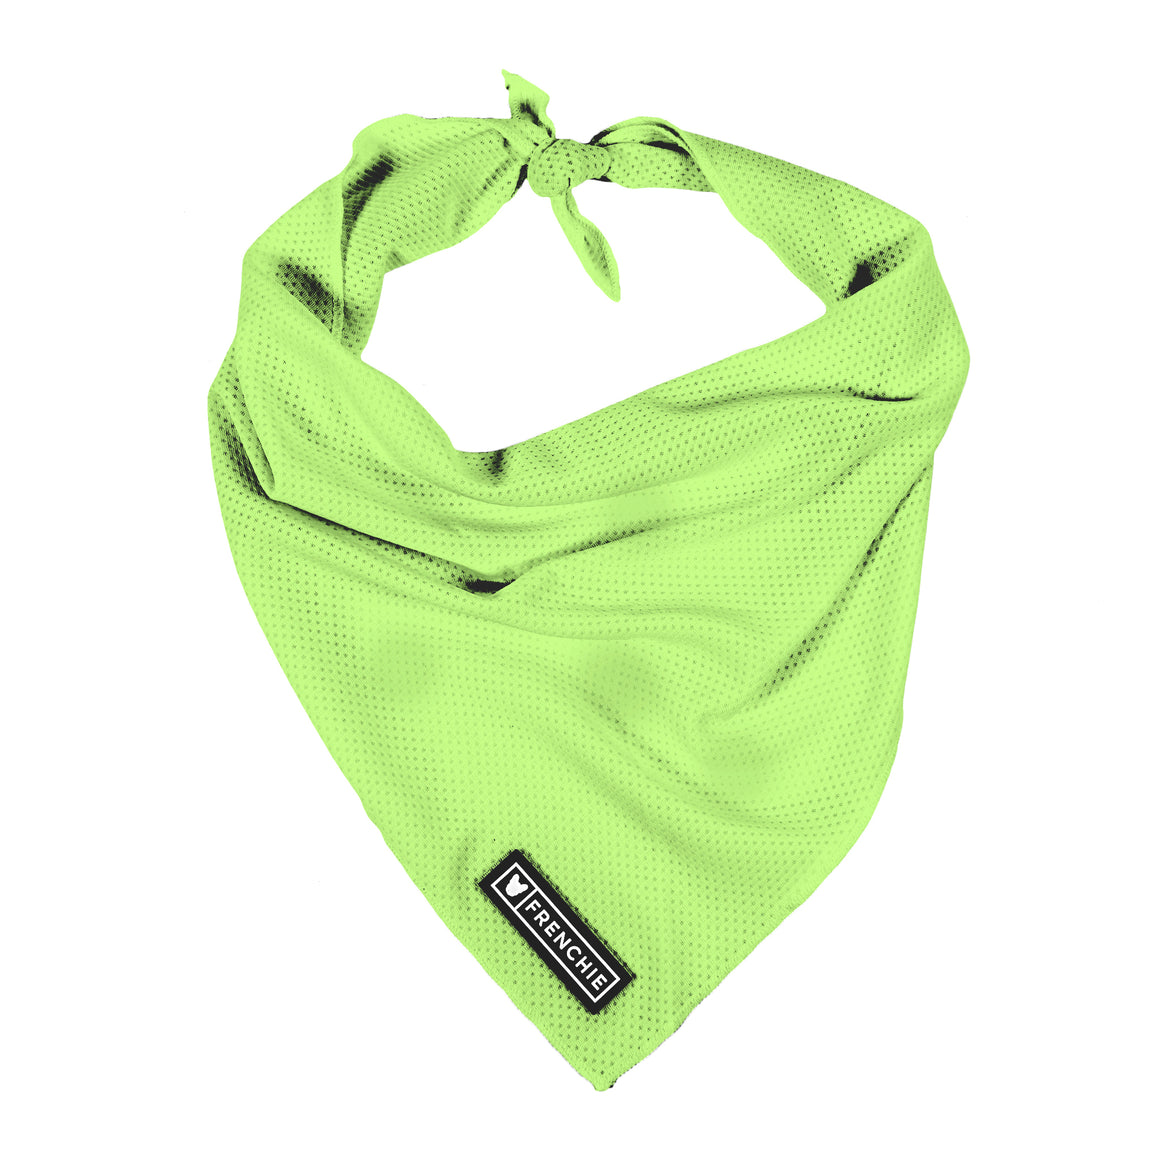 Frenchie Cooling Bandana- Neon Yellow